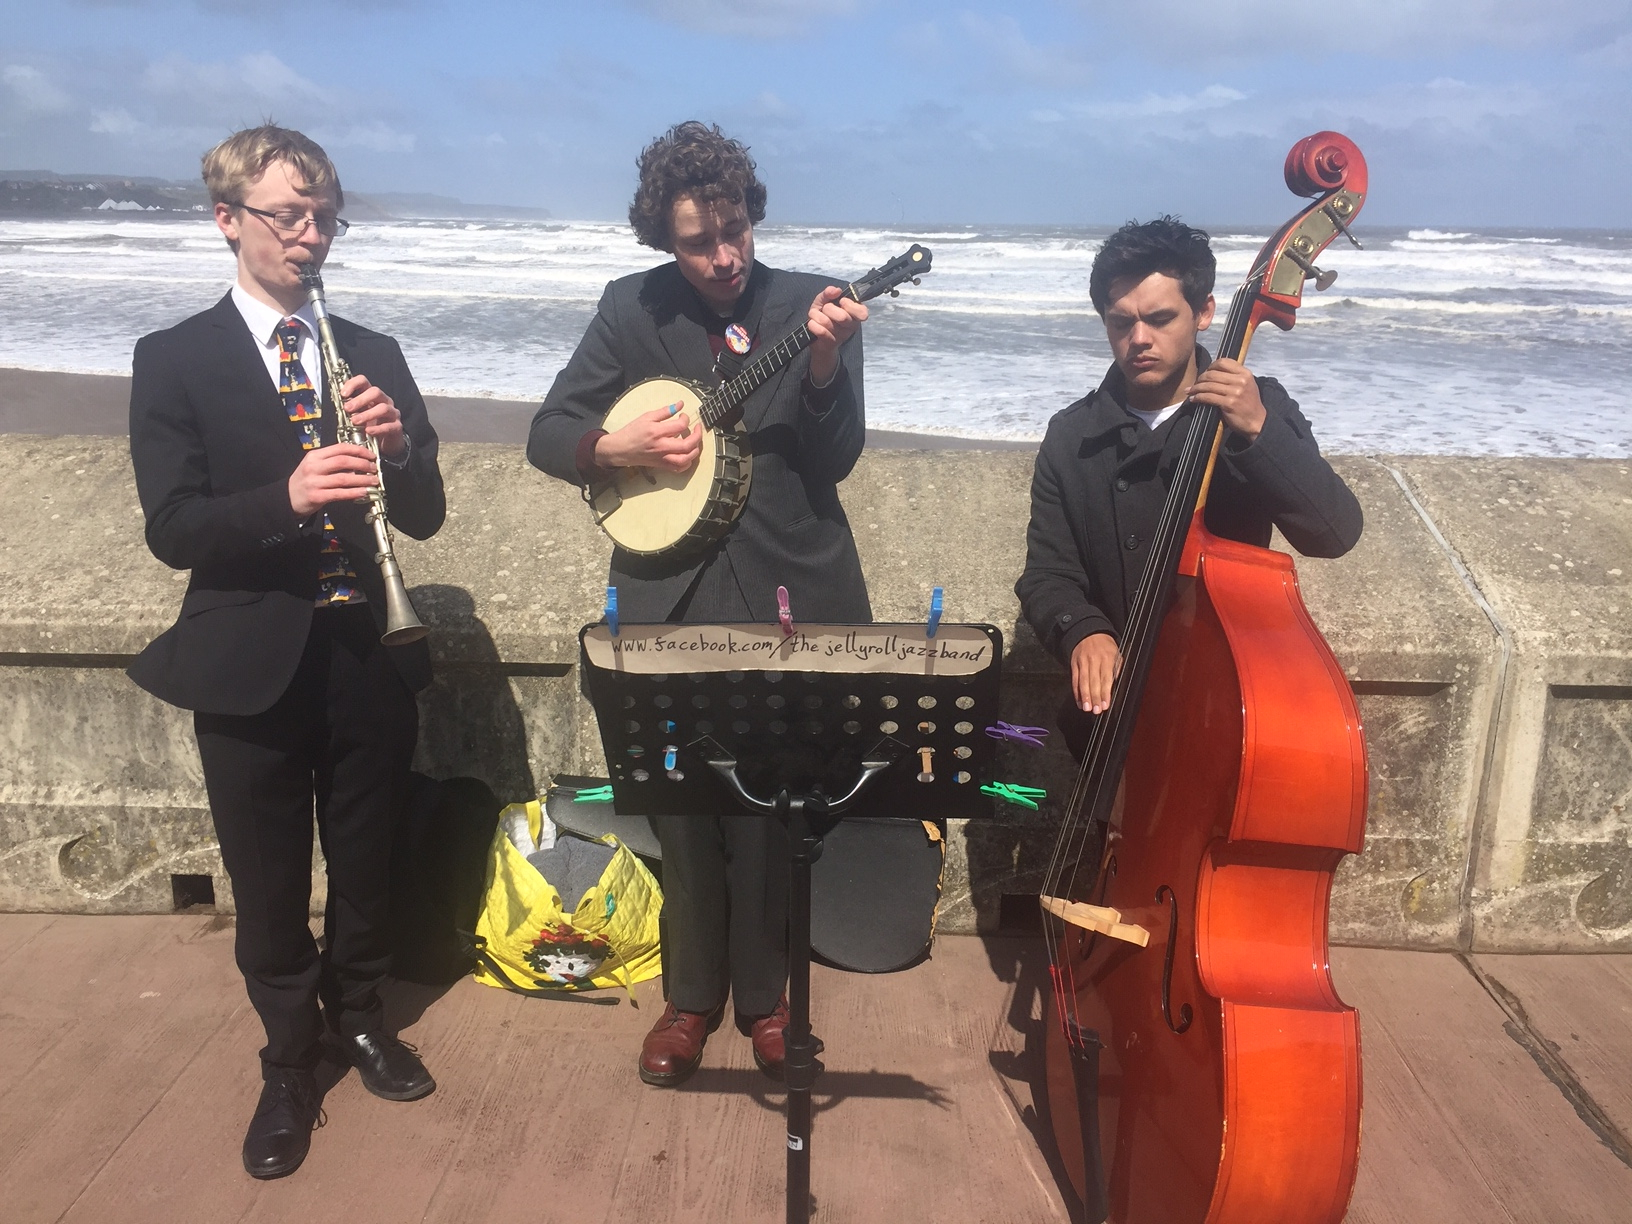 The Jelly Roll Jazz Band performing for The Tour de Yorkshire on Scarborough sea front, May 2019